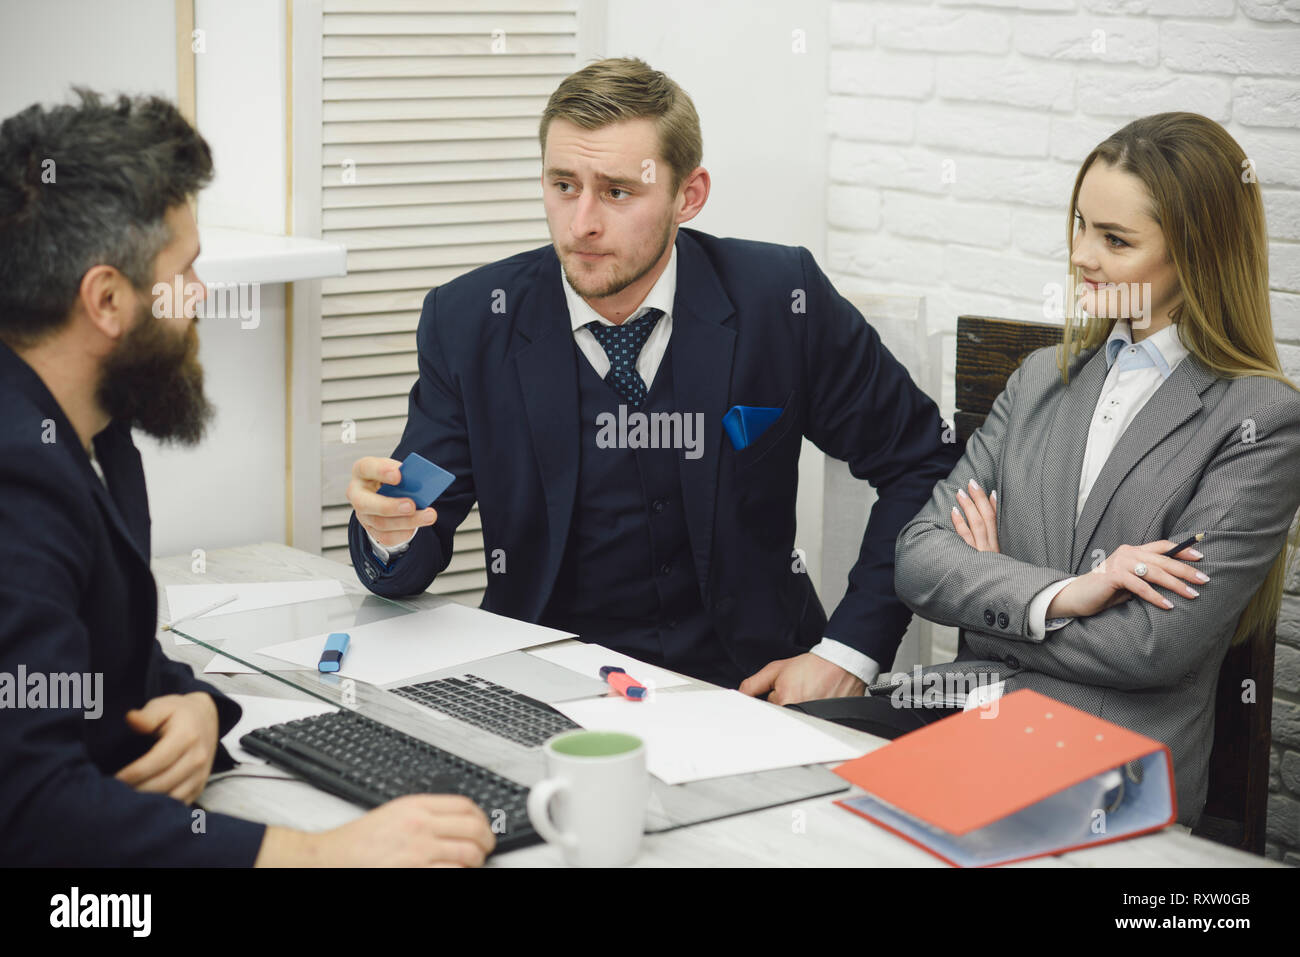 Business partners, businessmen at meeting, office background. Business crediting and investing concept. Businessman ask for investment. Bank workers - Stock Image